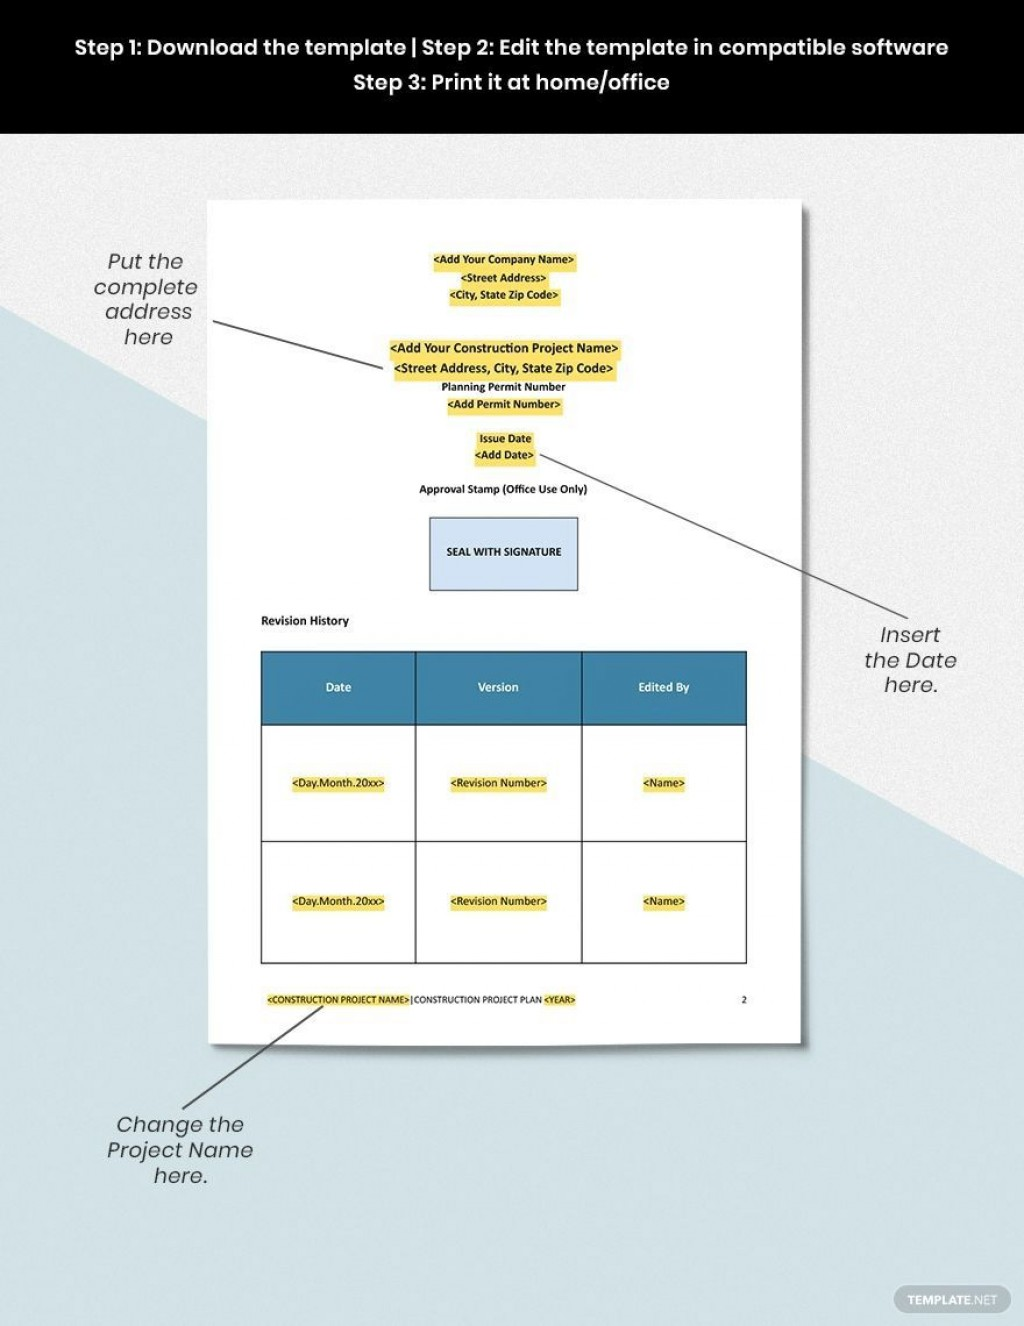 001 Imposing Construction Project Management Plan Template Word Sample Large